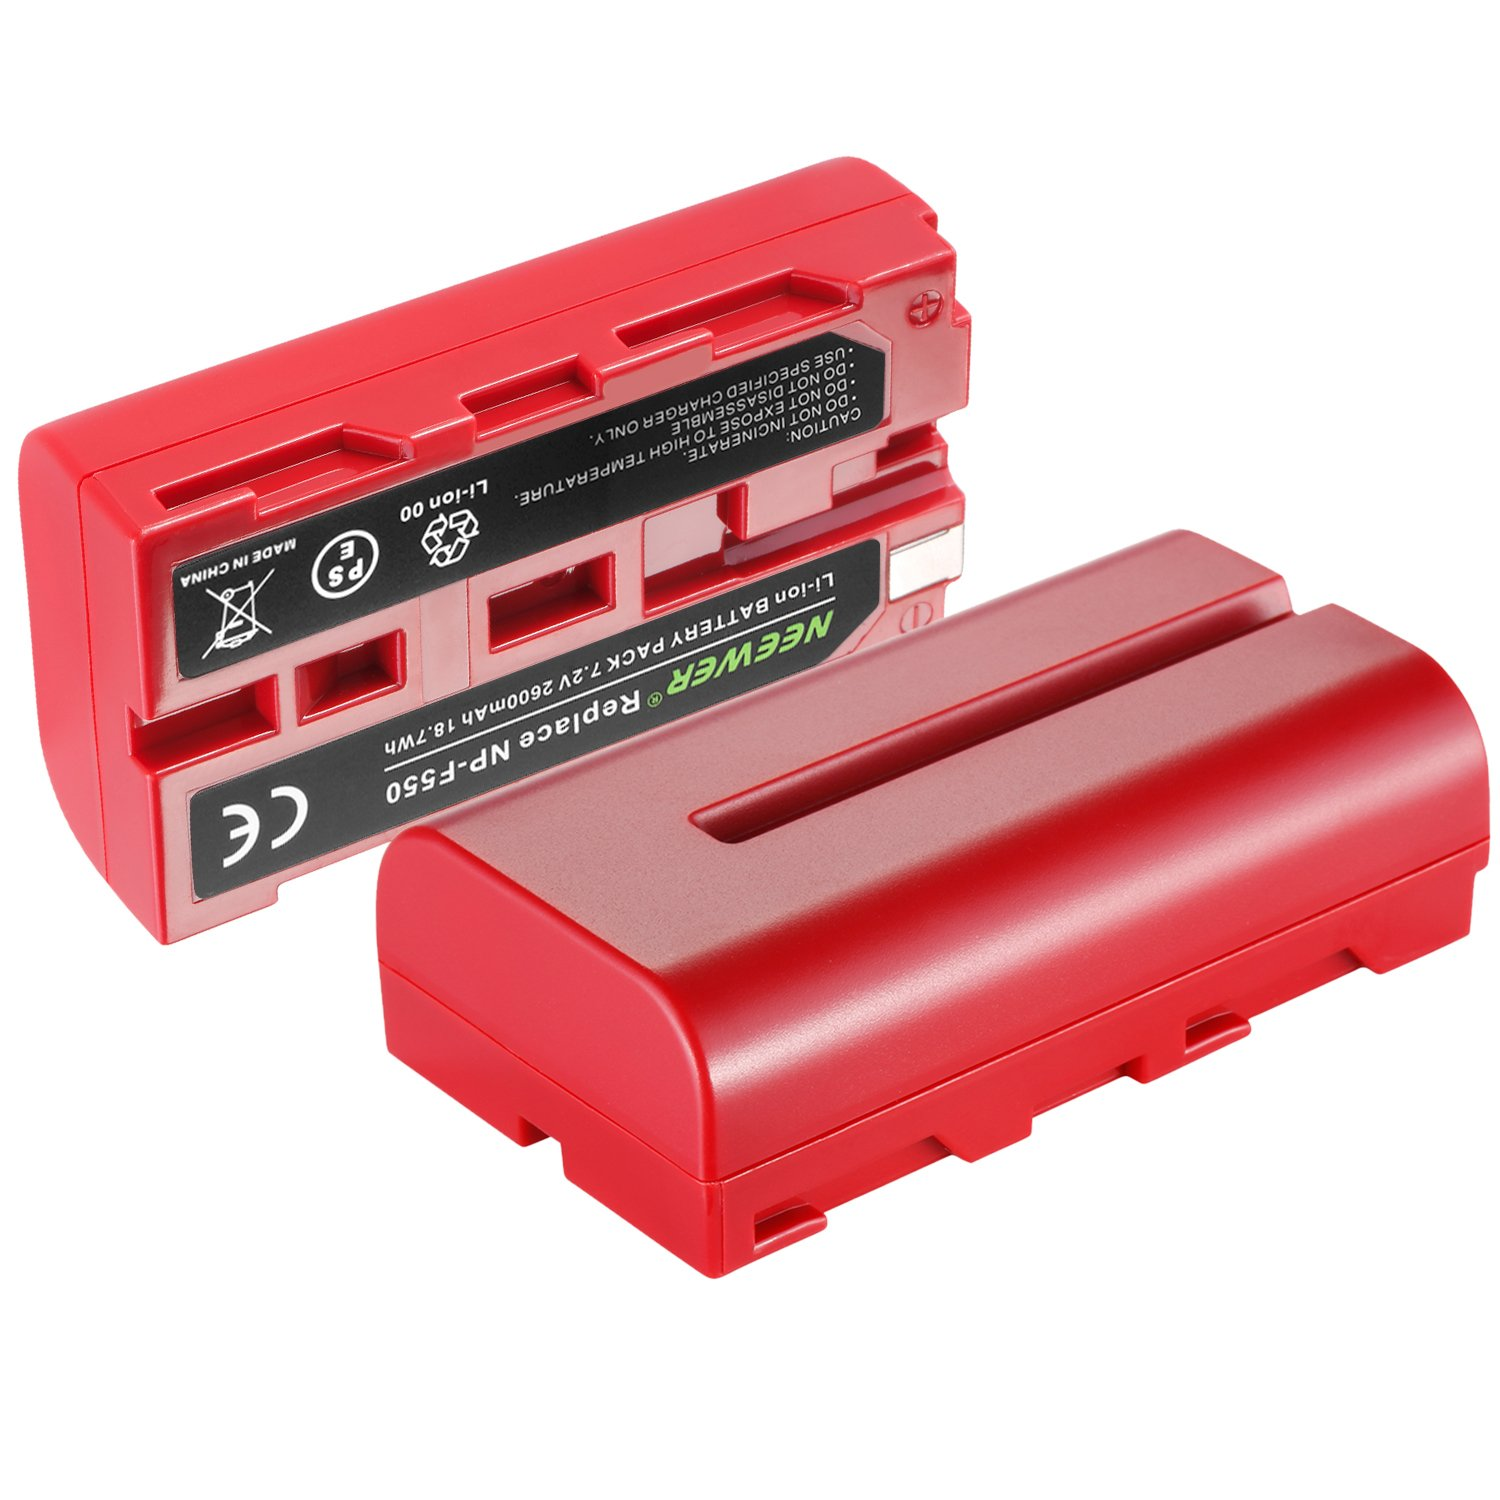 with Dual Charger for Sony HandyCams 759 74K 760 Feelworld 759 74K 760 Field Monitor CN-160 CN-216 LED Light Neewer 2 Pieces 2600mAh Sony NPF550//570//530 Replacement Li-ion Battery Red